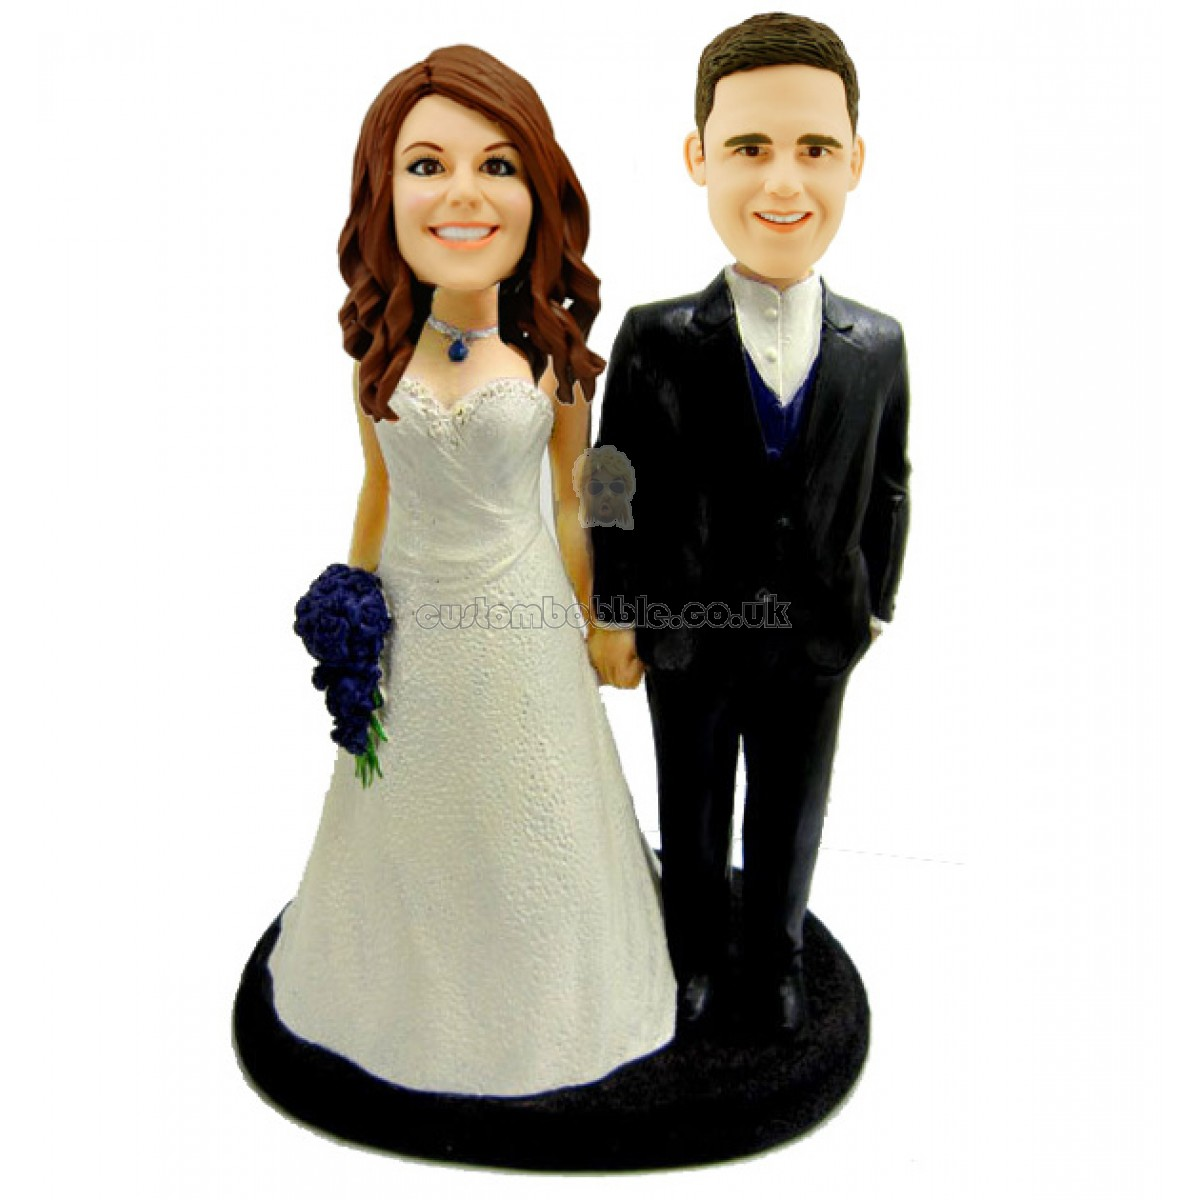 Cake Toppers Uk Personalised : personalised wedding cake topper